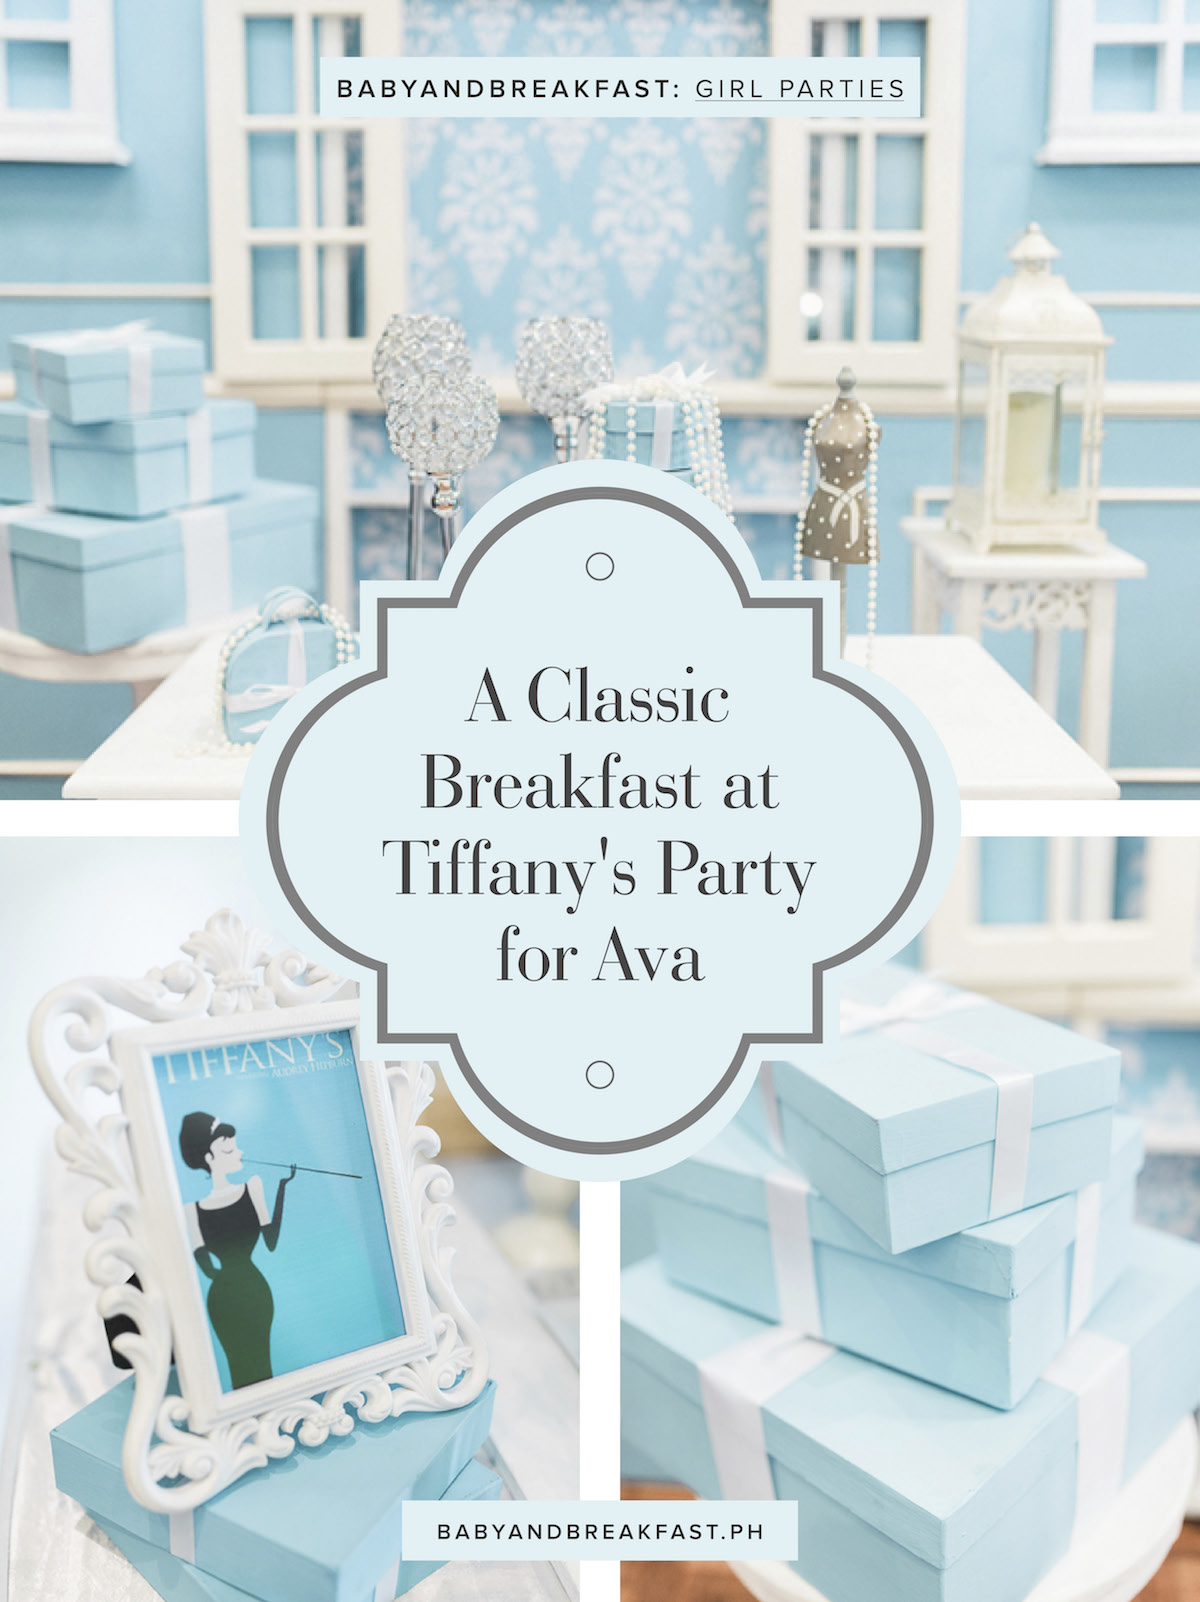 Baby and Breakfast: Girl Parties A Classic Breakfast at Tiffany's Party for Ava